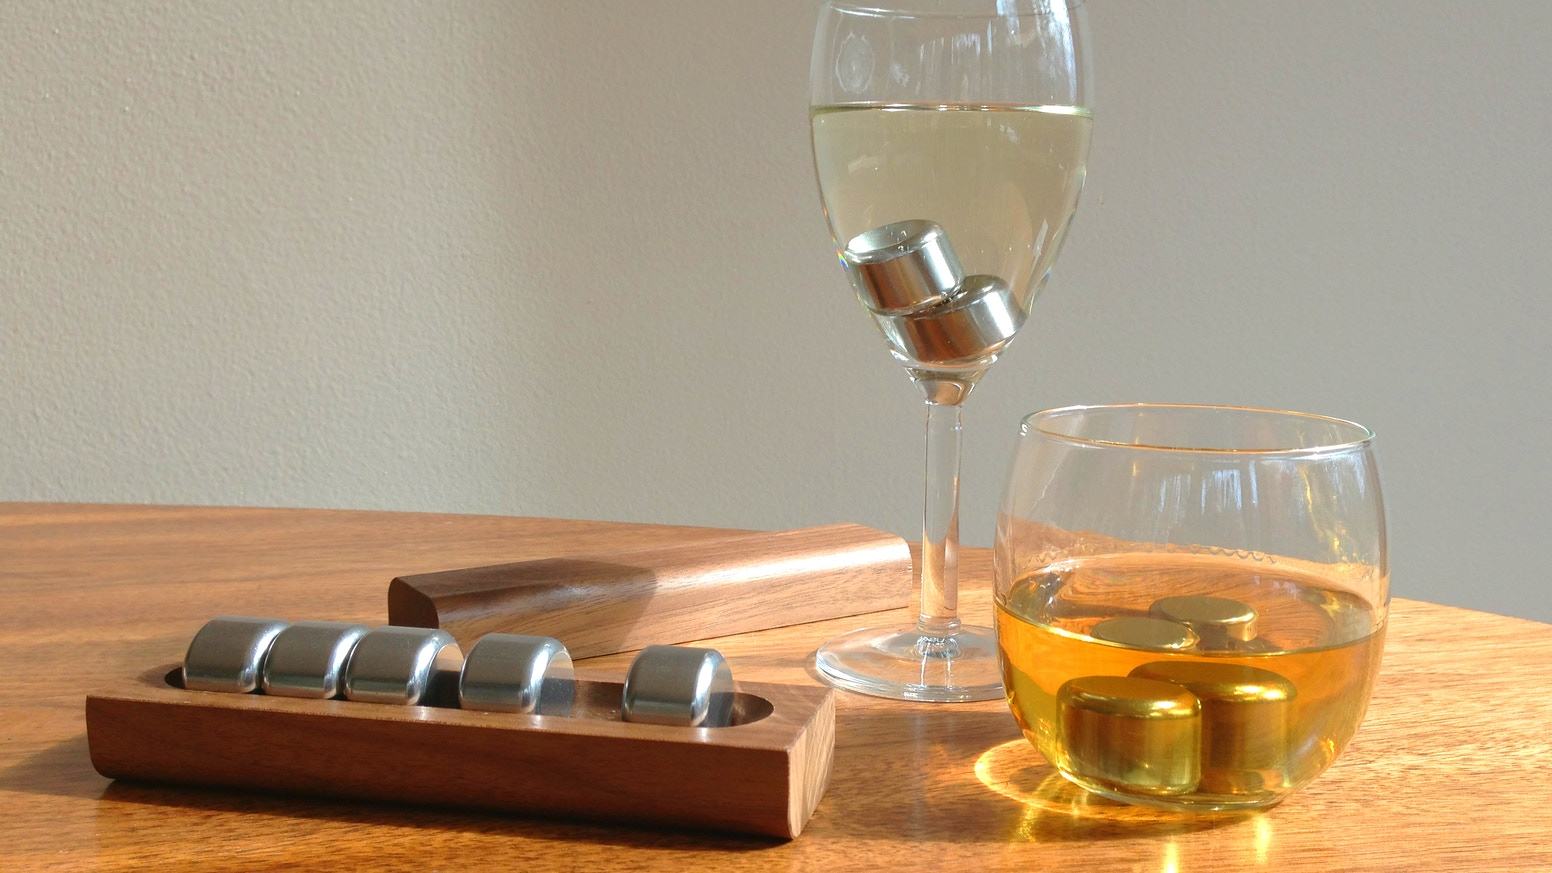 Re-chillable Pucs cool your drink without watering it down. Perfect for wine, whiskey, scotch - even coffee!